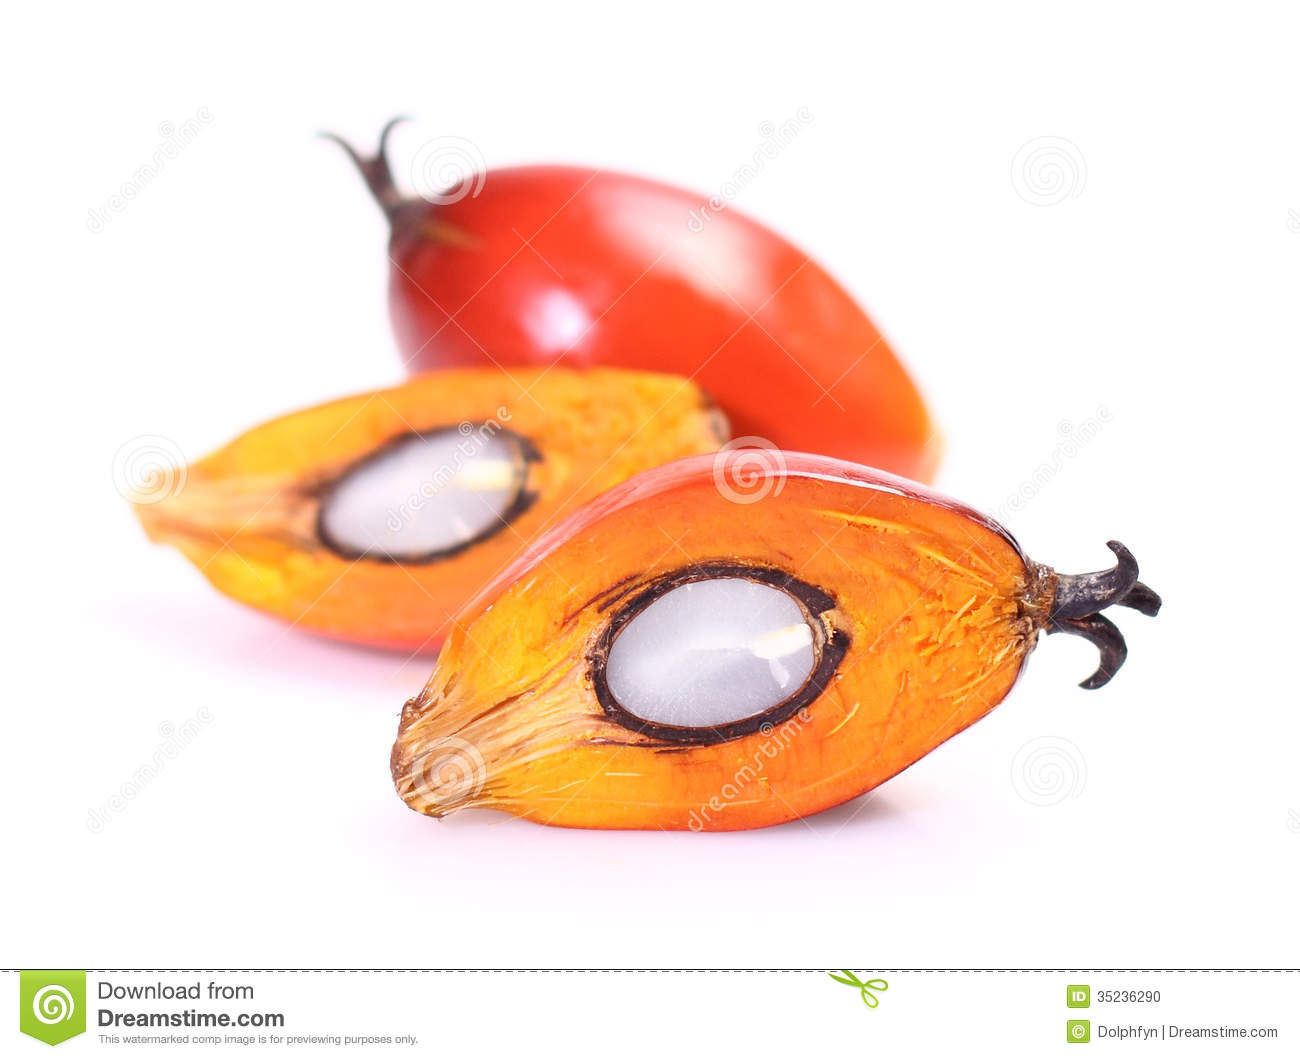 Palm fruit clipart #16